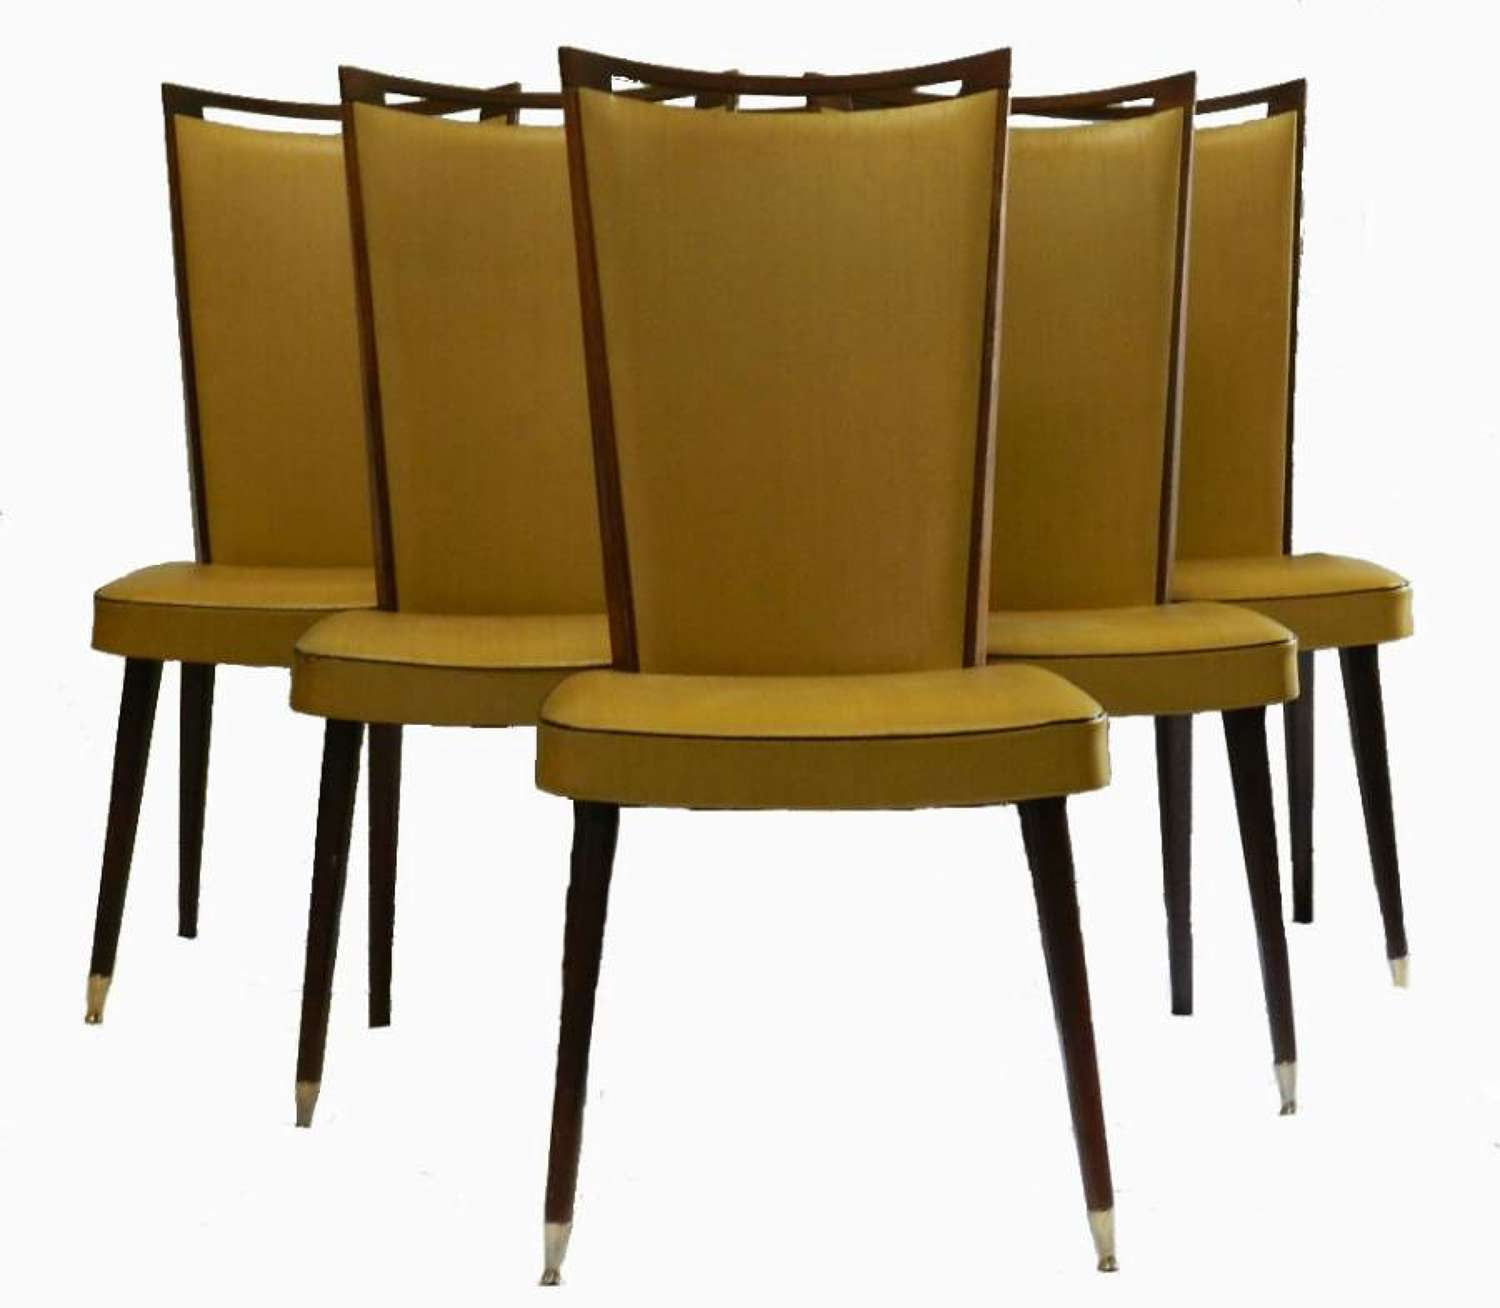 6 French Mid Century Dining Chairs